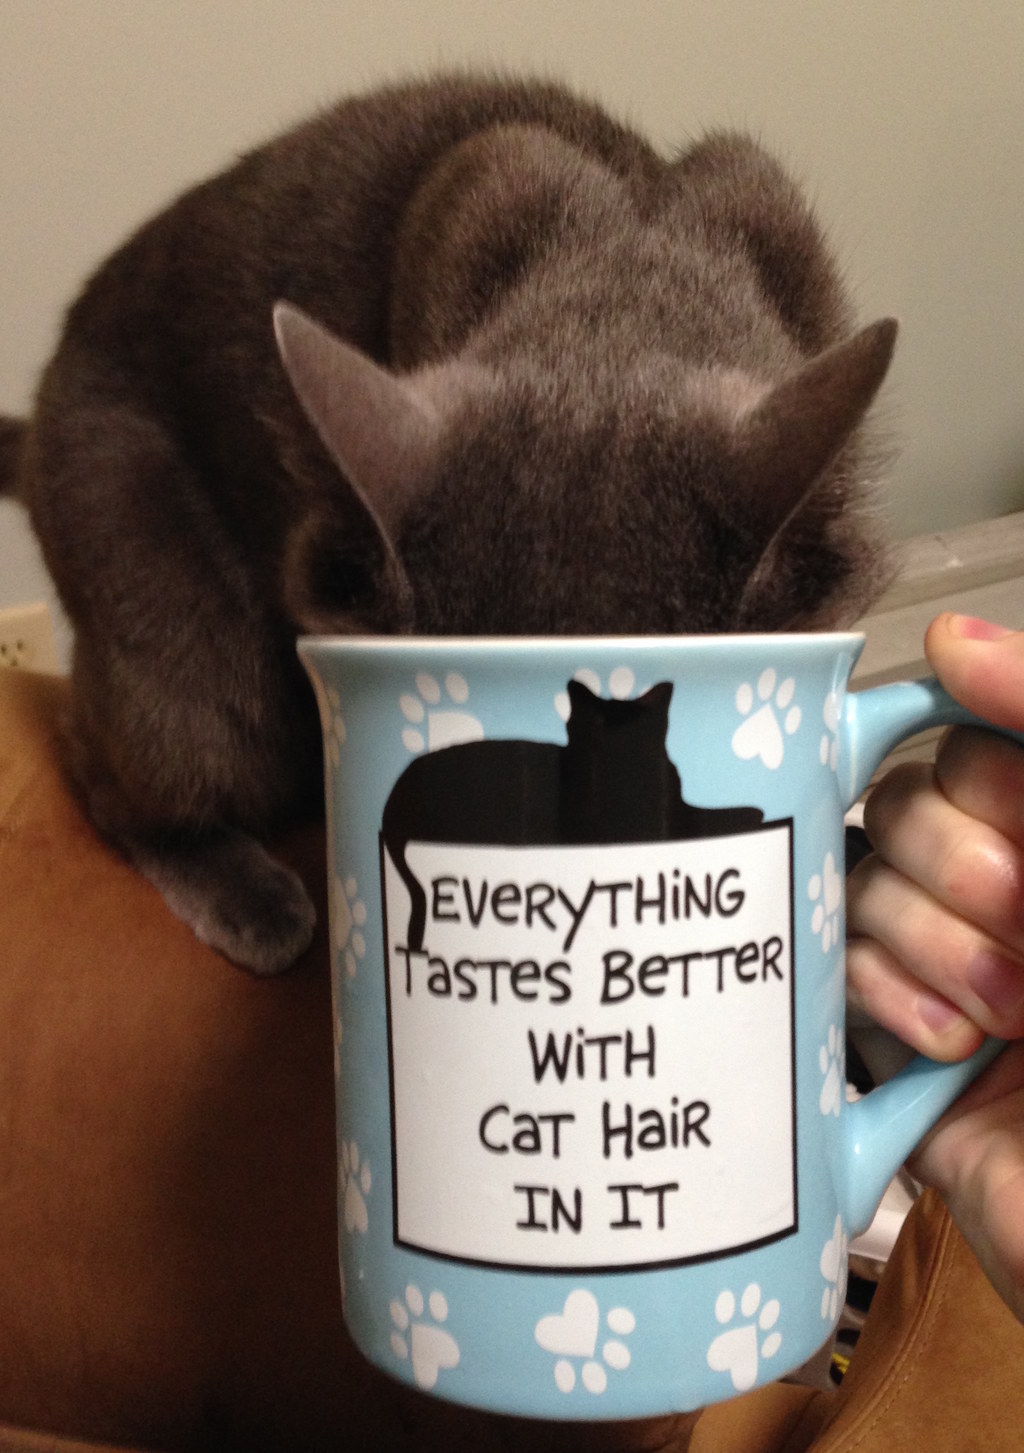 22 Things Only Cat Owners Understand About Cats